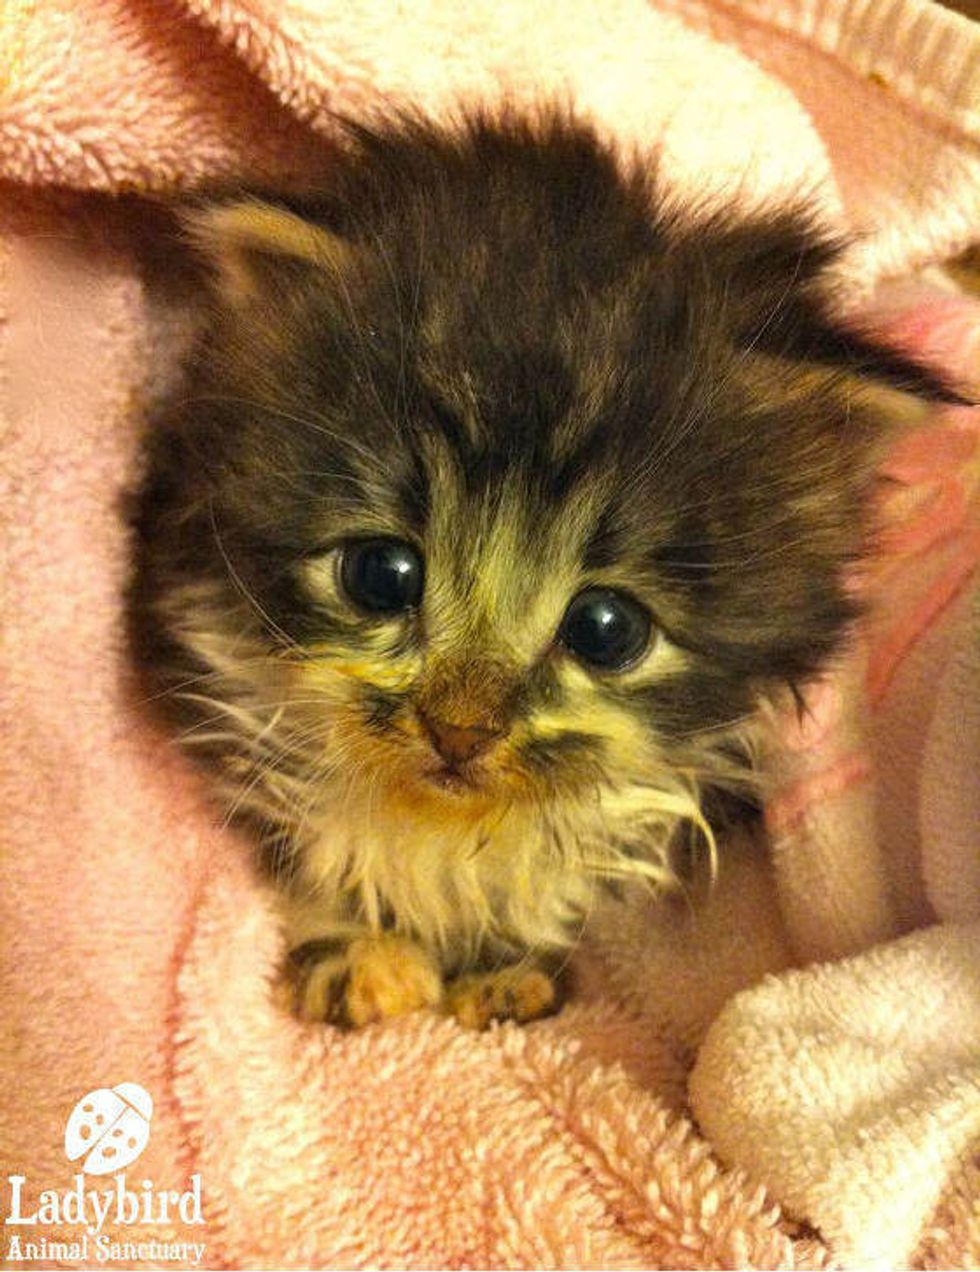 Little Bean the 3-week-old Orphan Kitten Strays into New Life